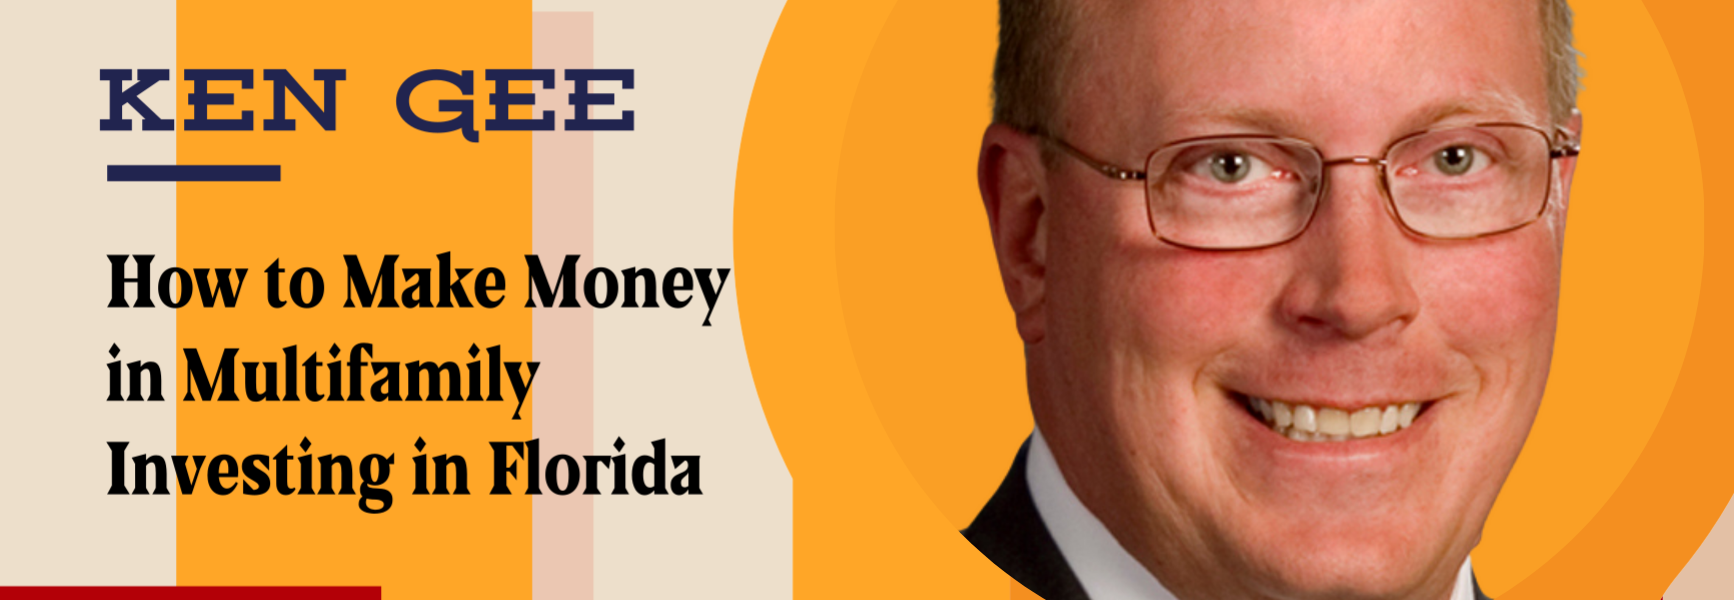 How to Make Money in Multifamily Investing in Florida with Ken Gee